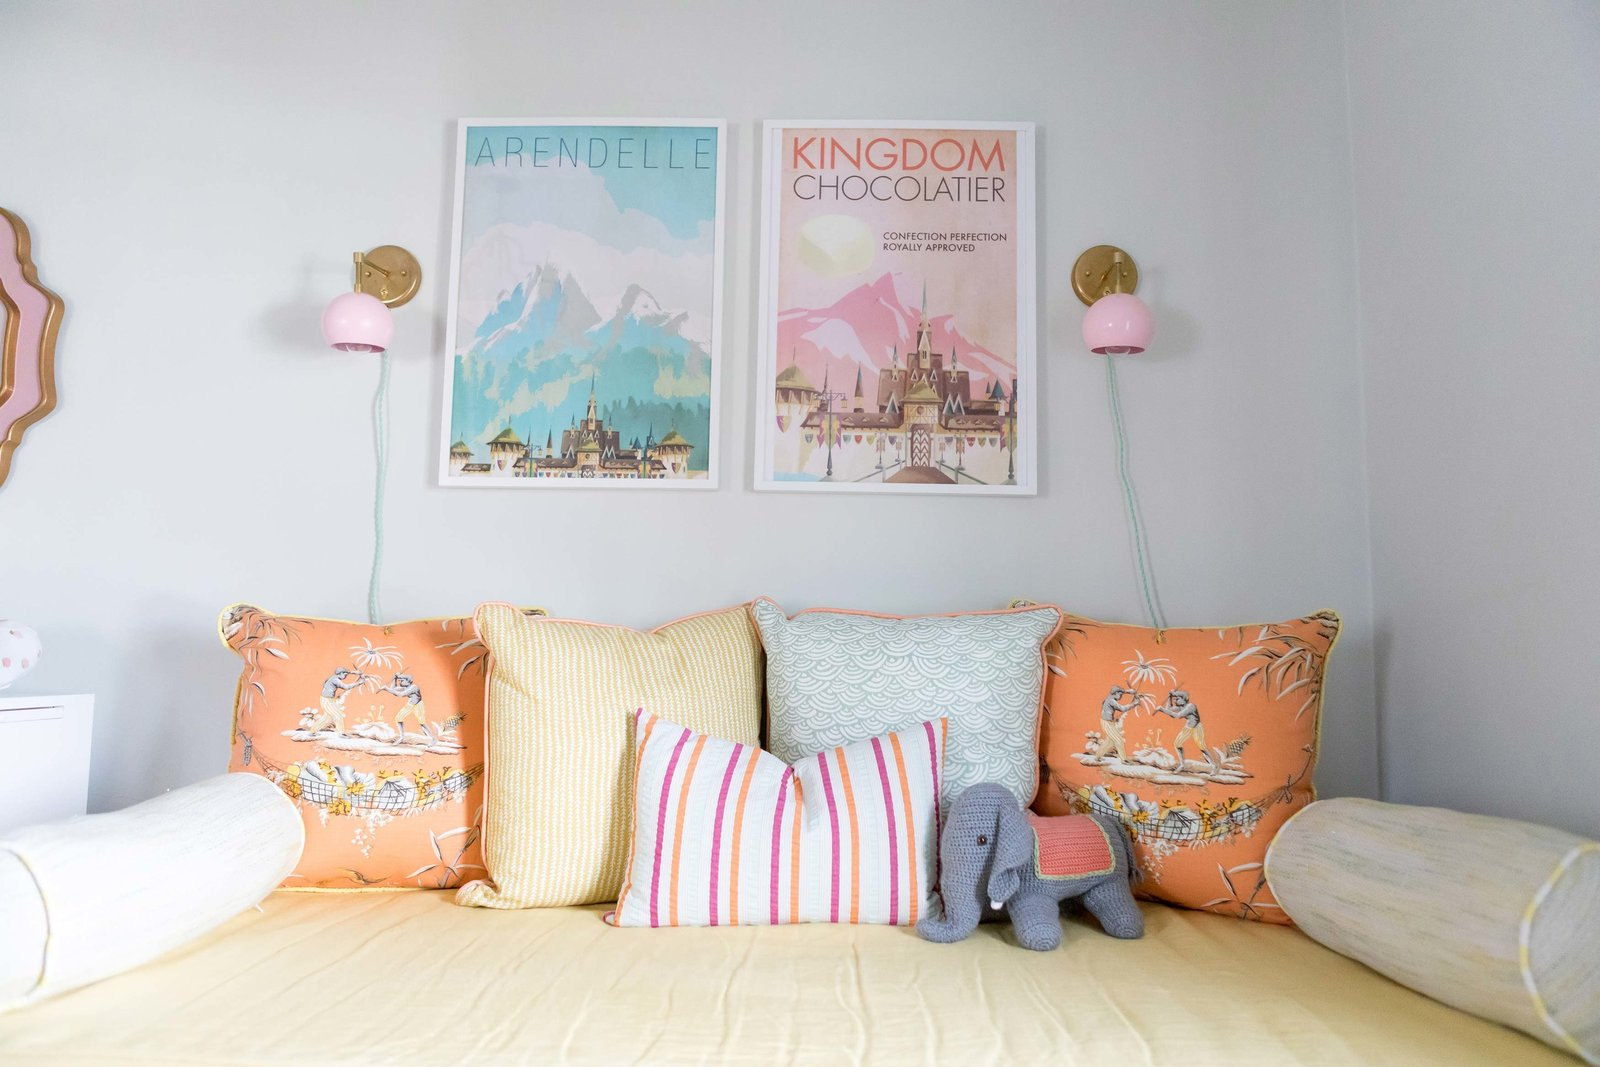 A day bed with colorful throw pillows and two framed posters.